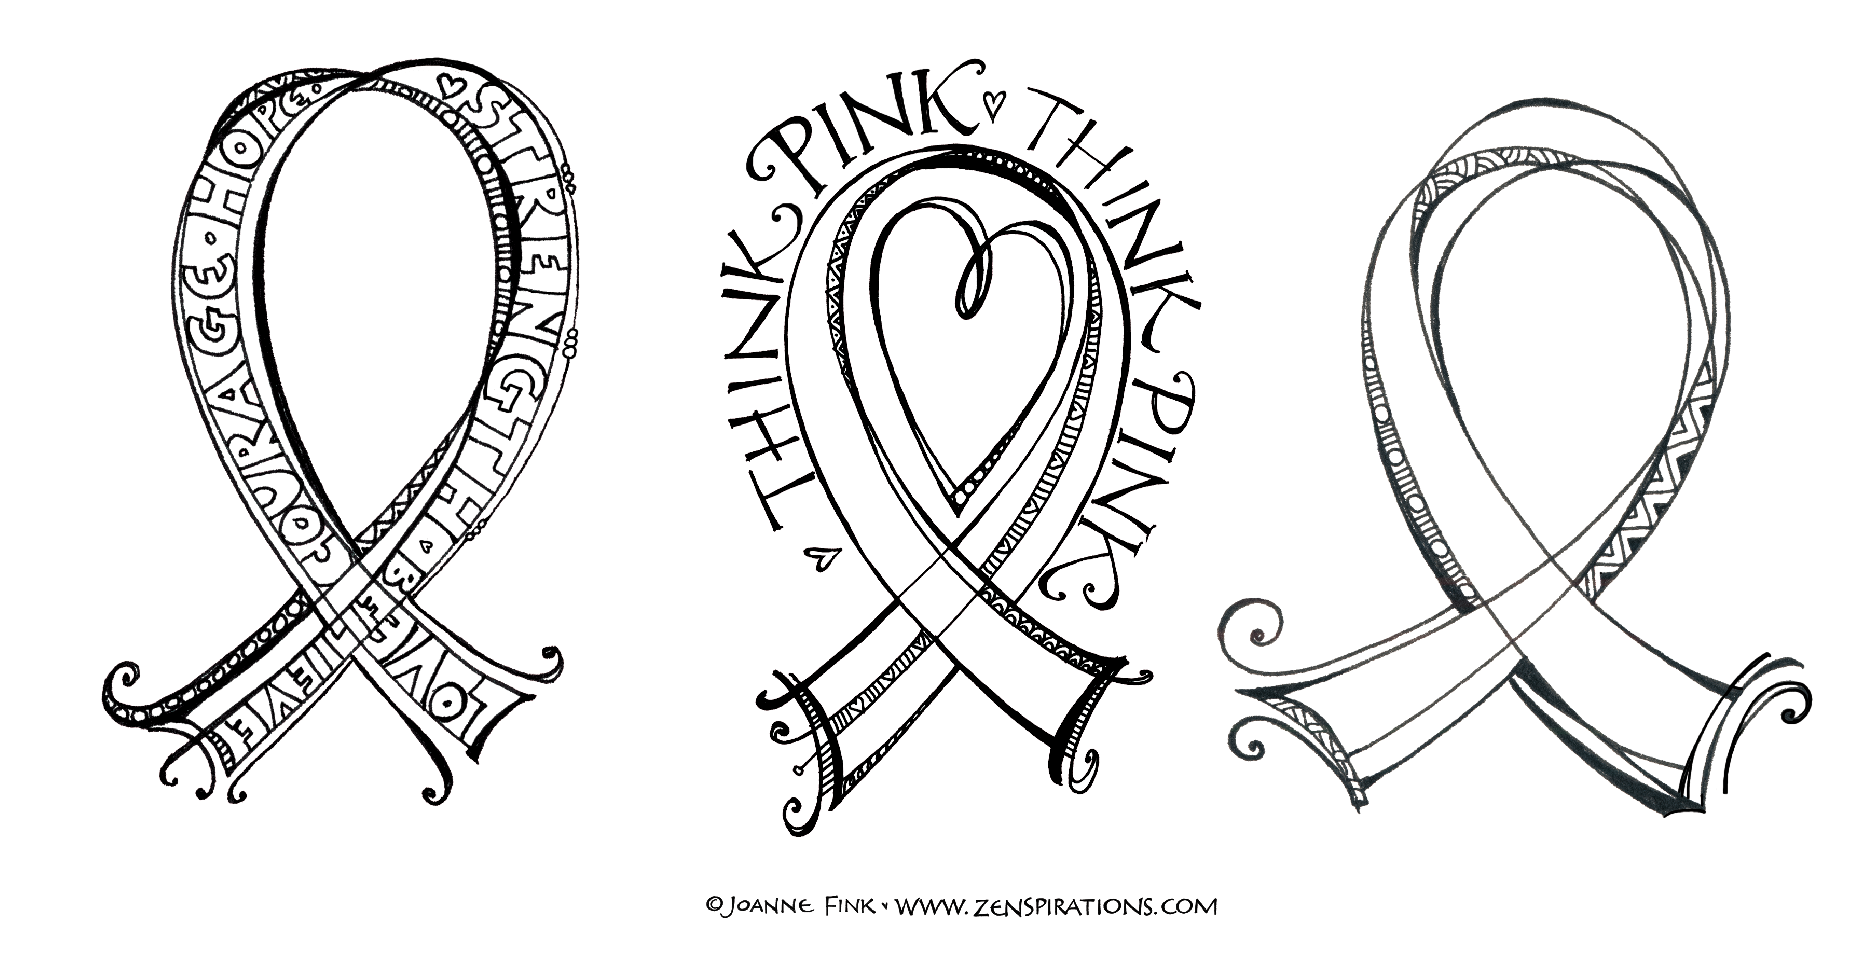 Zenspirations blog think pink free downloadable coloring pages